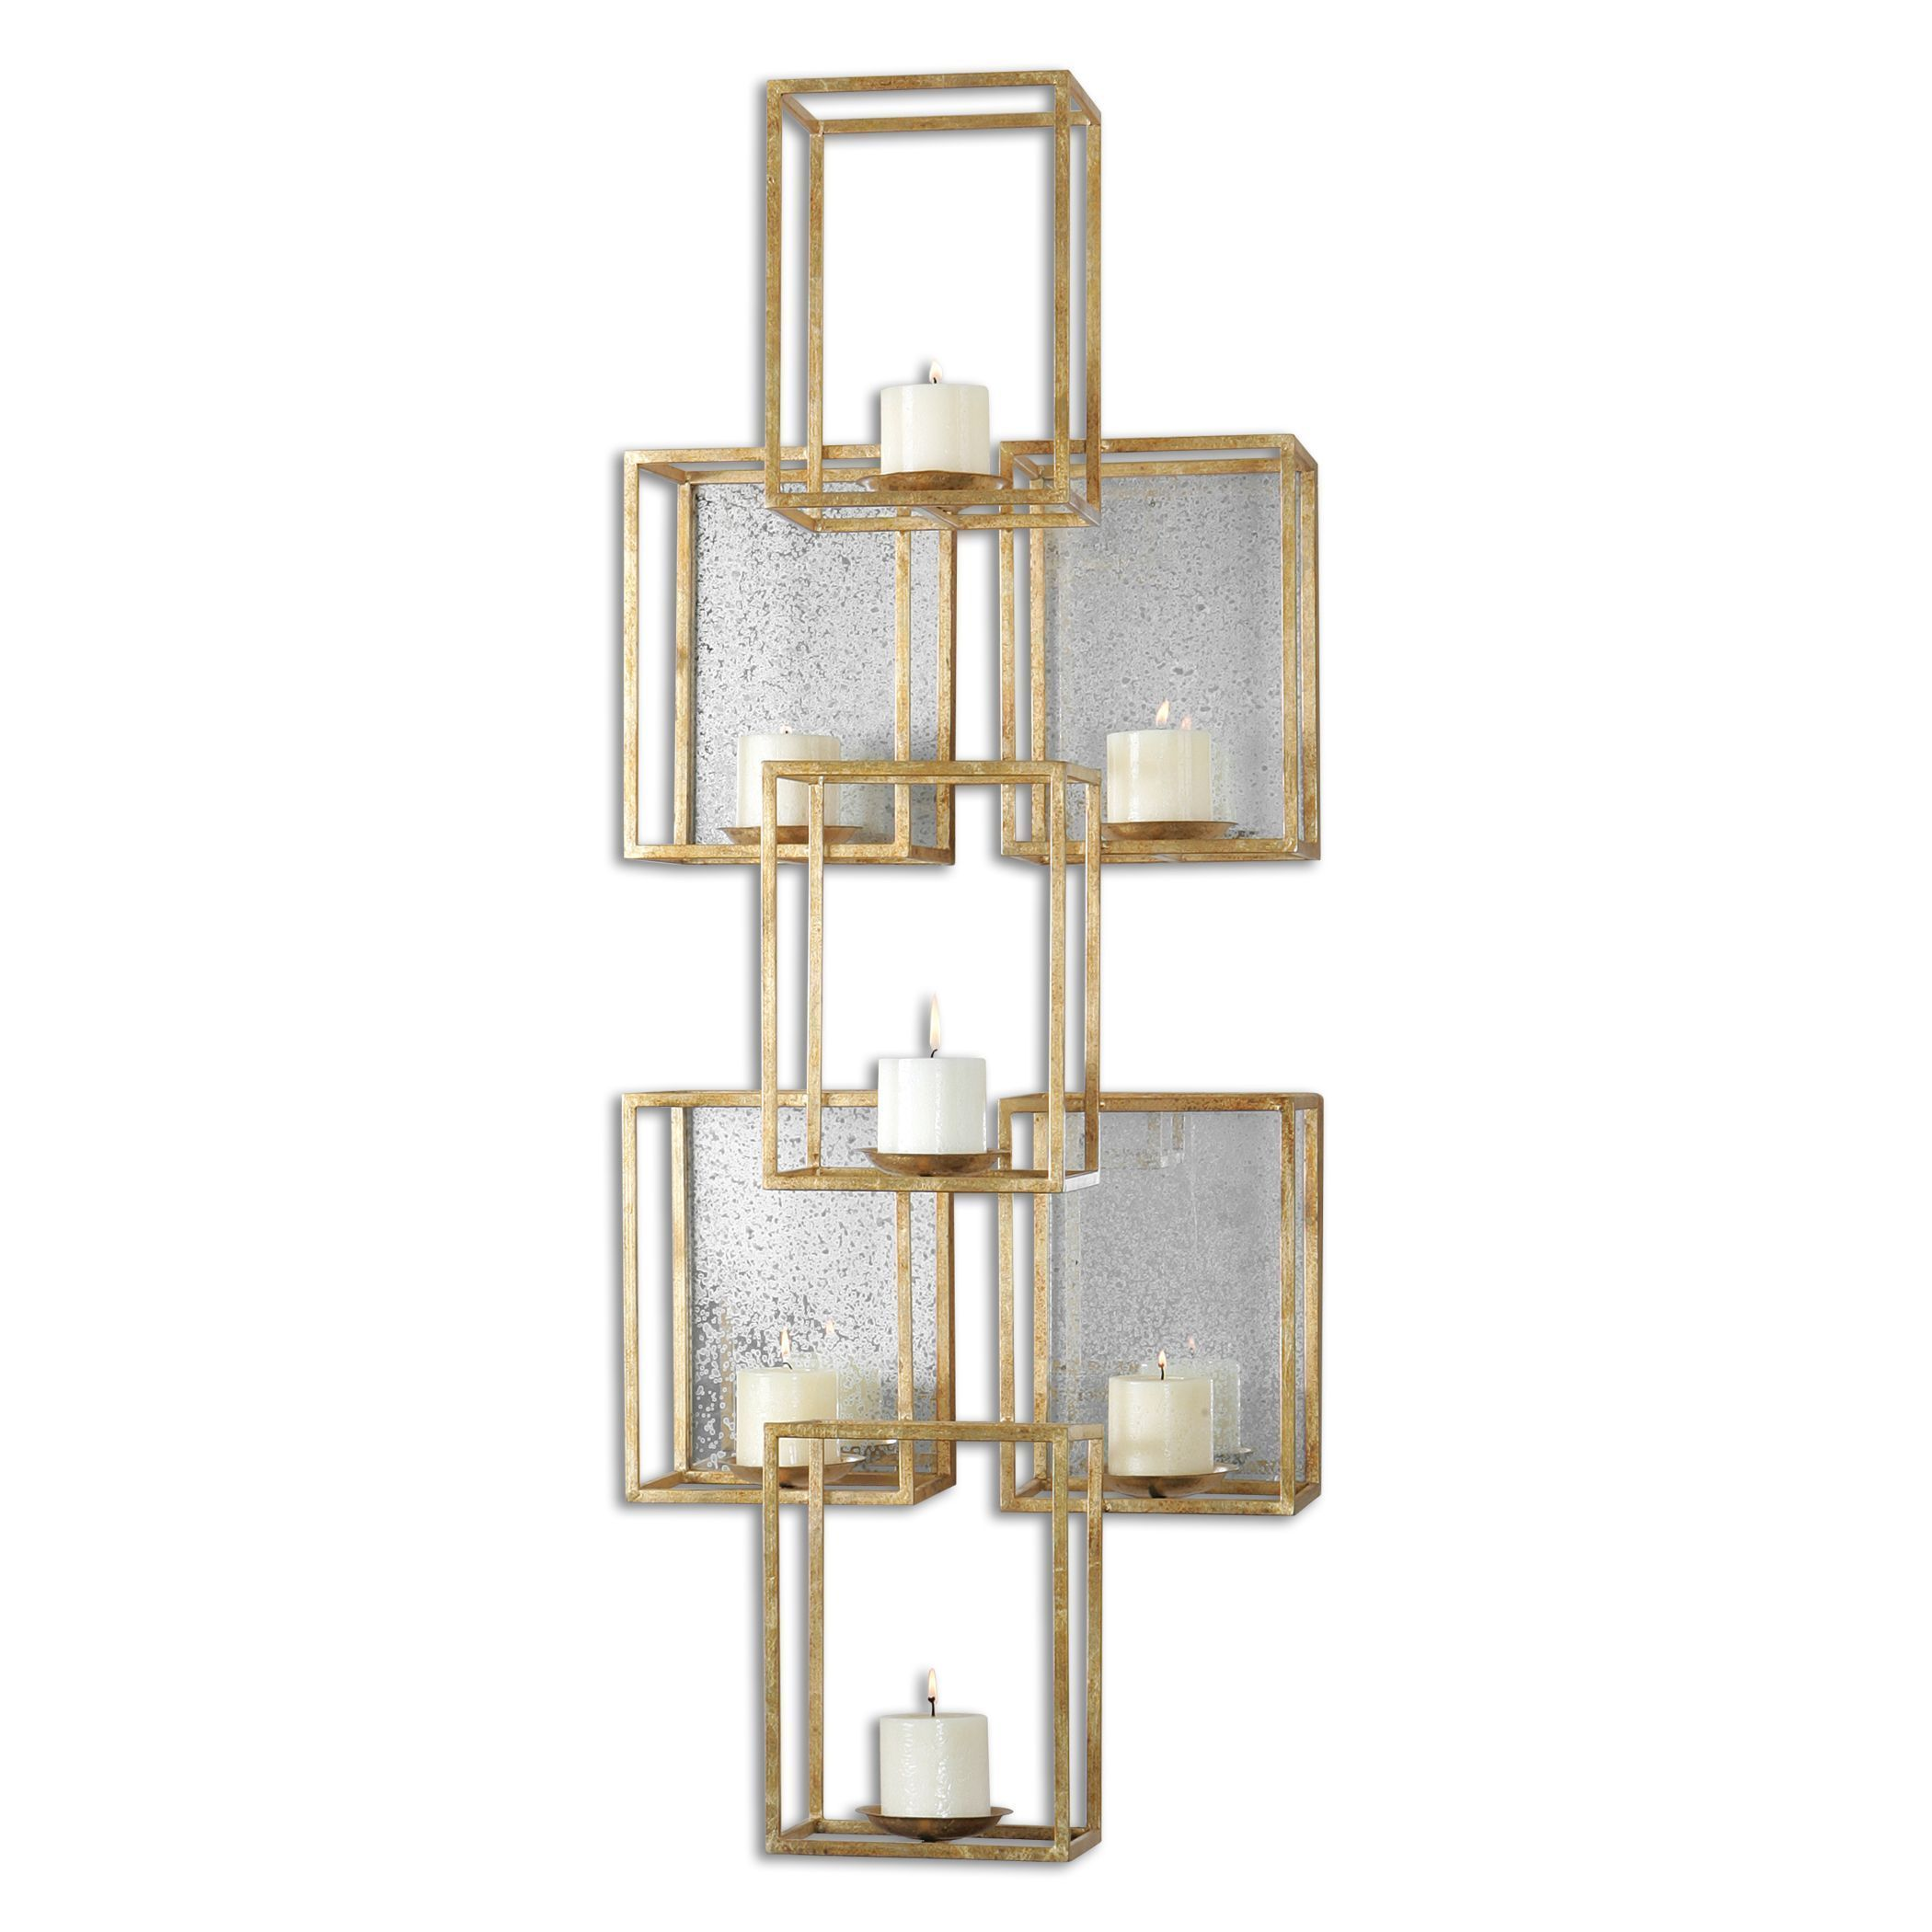 Uttermost ronana mirrored light candleholder wall sconce lights